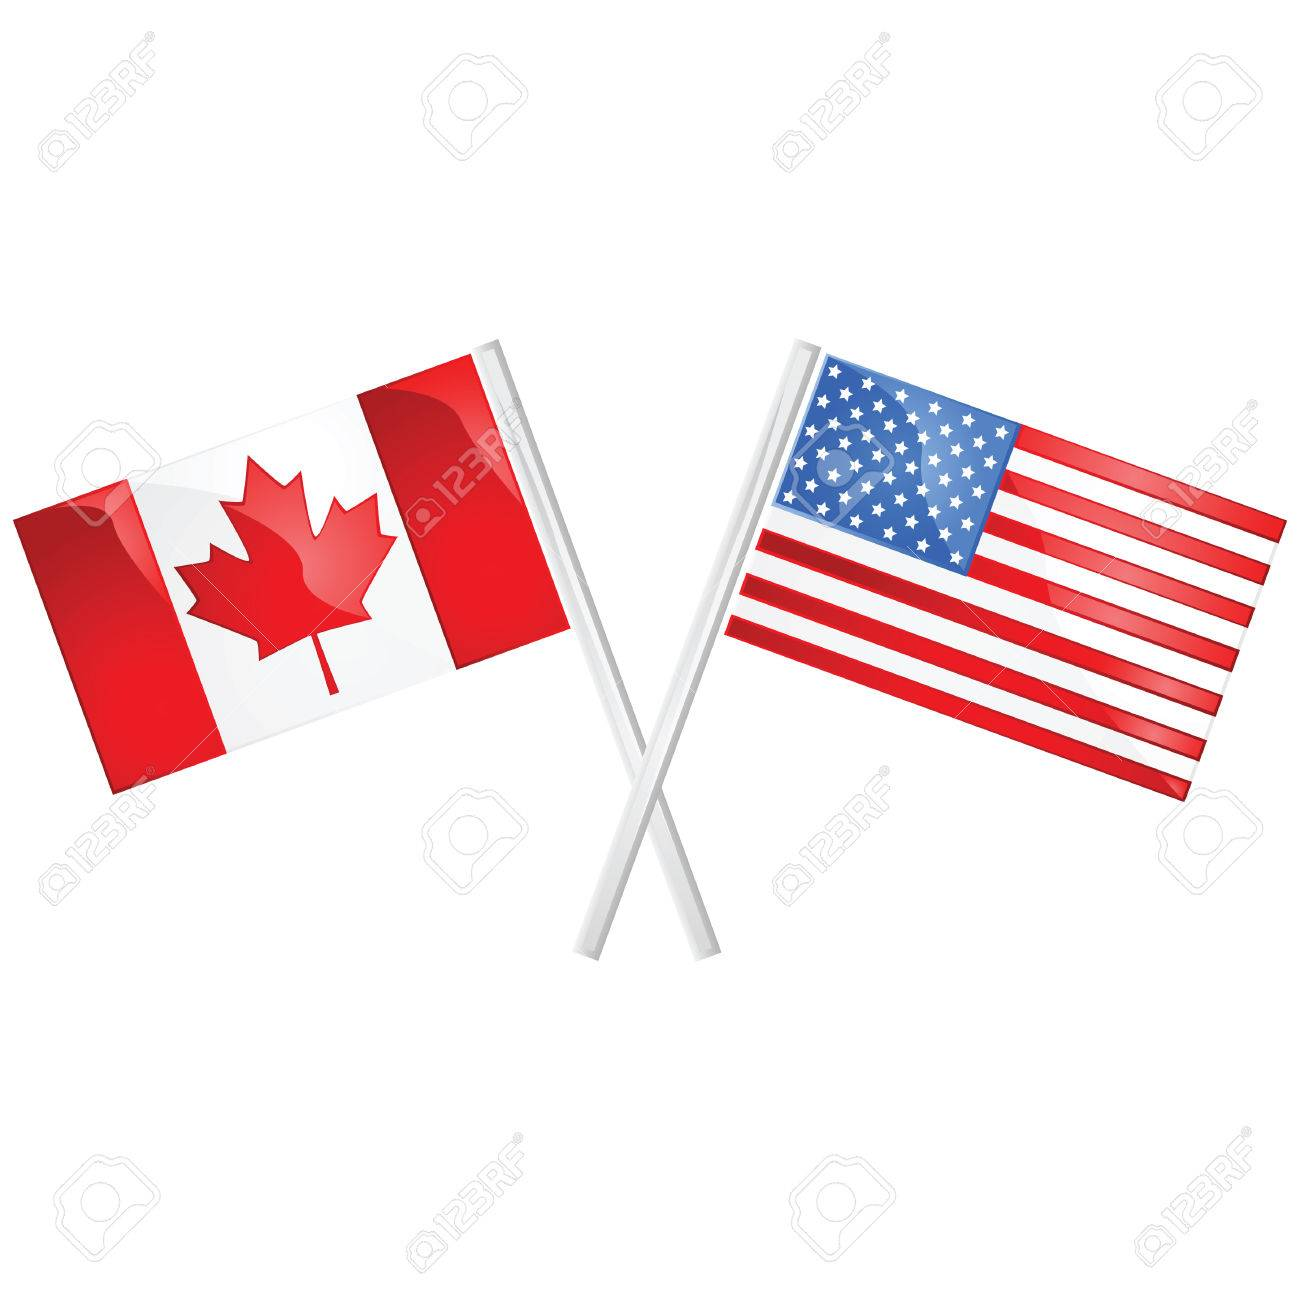 Glossy illustration of the Canadian and American flags crossed...